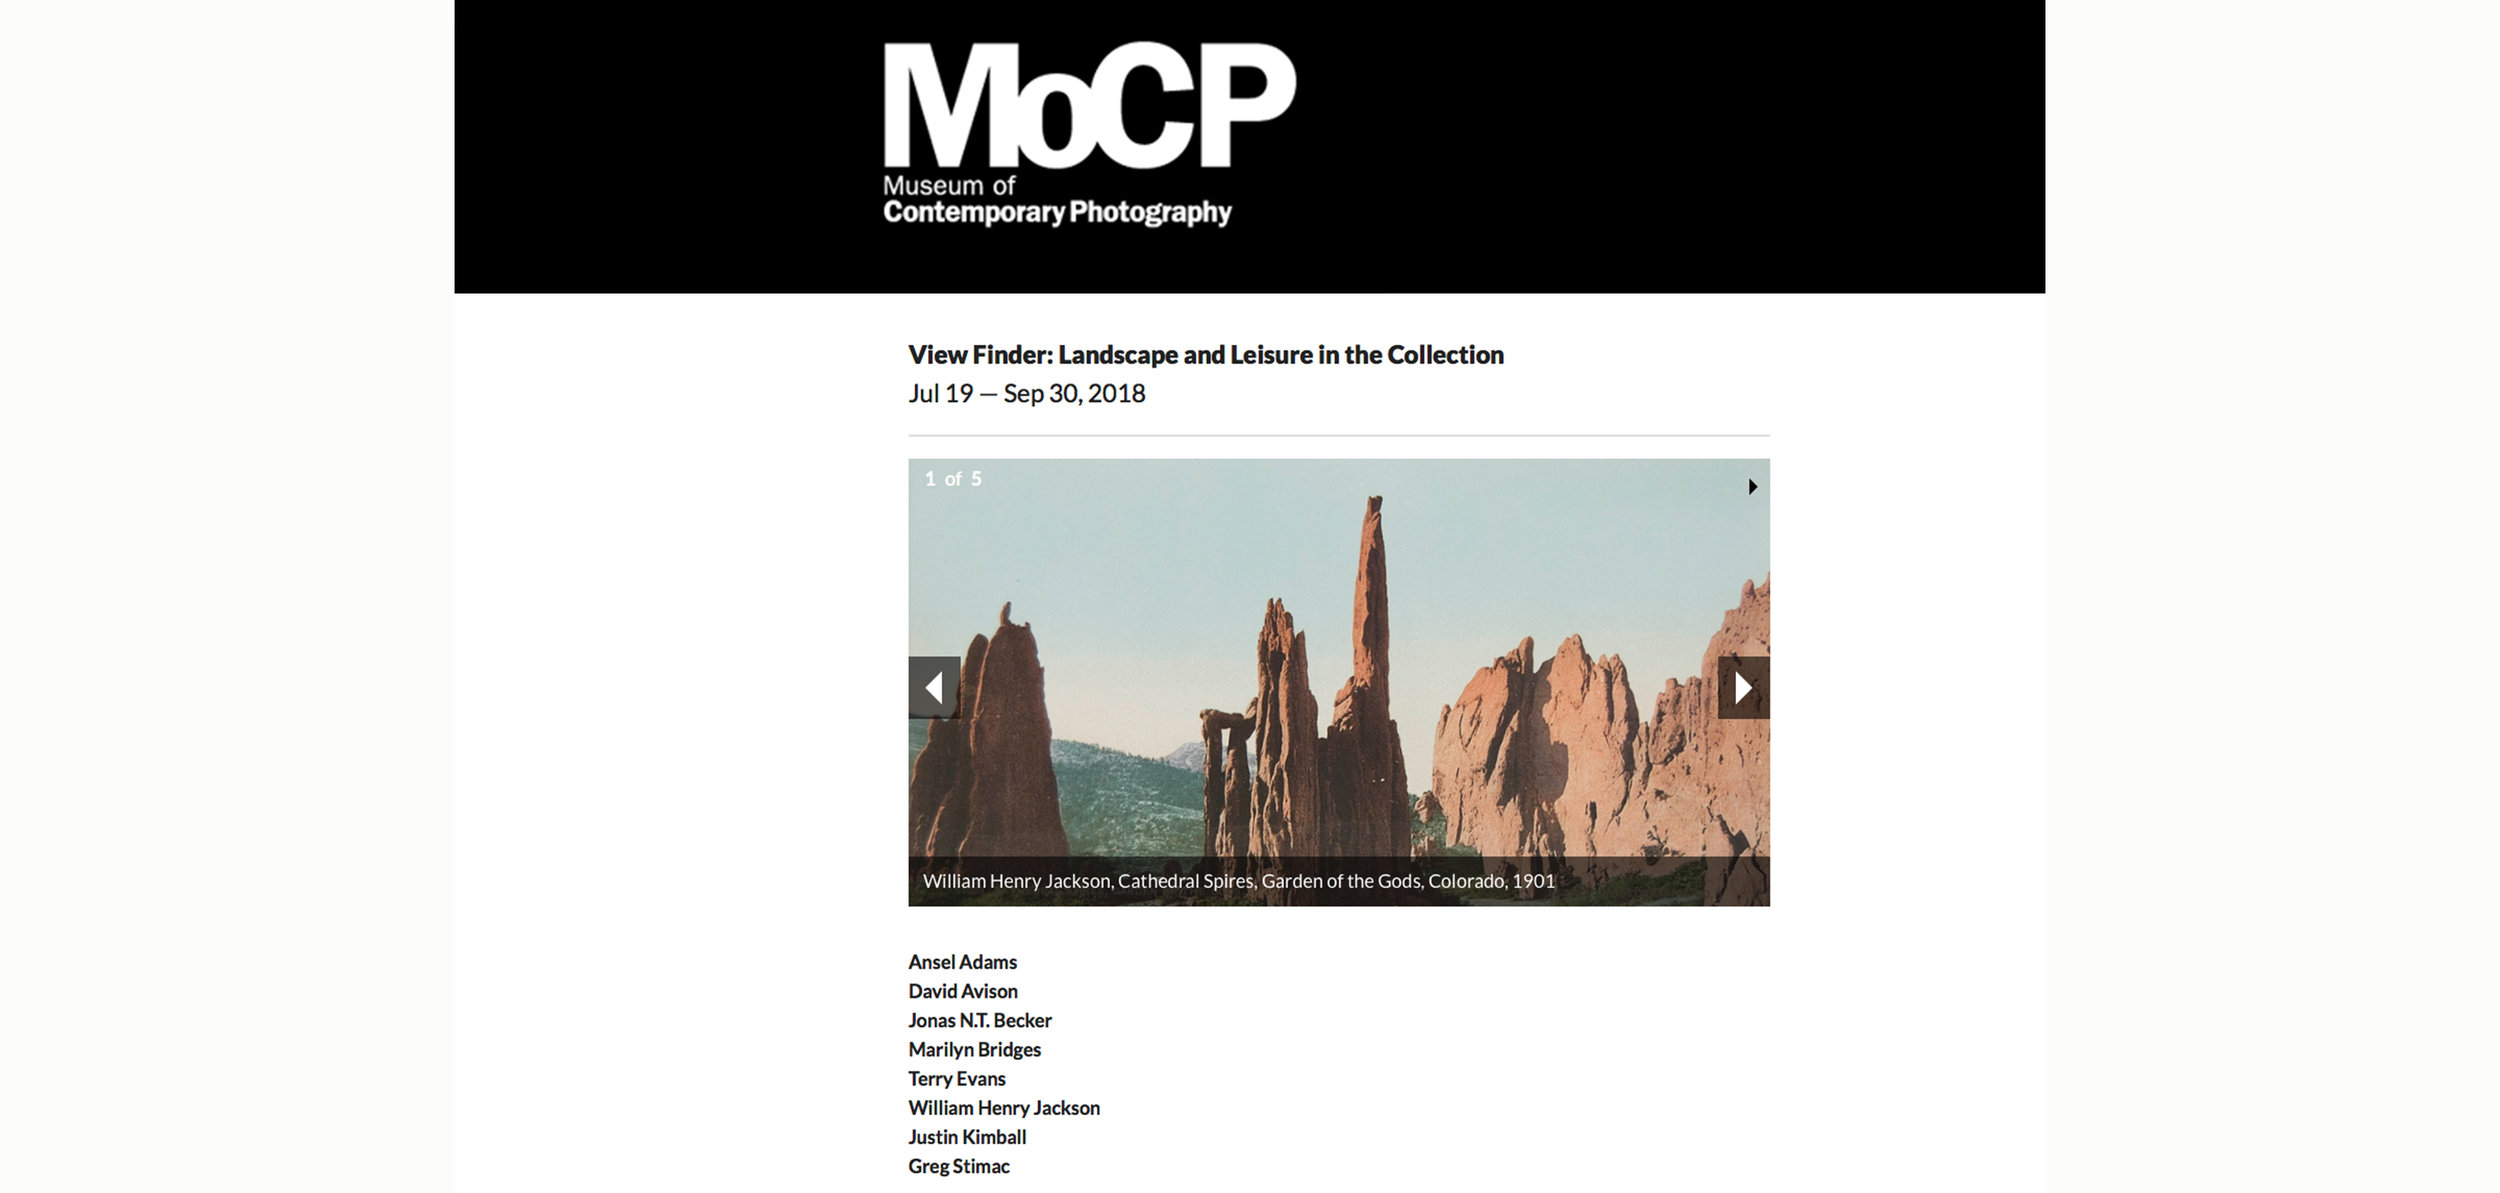 Upcoming Exhibition at the Museum of Contemporary Photography, Opens July 19, 2018